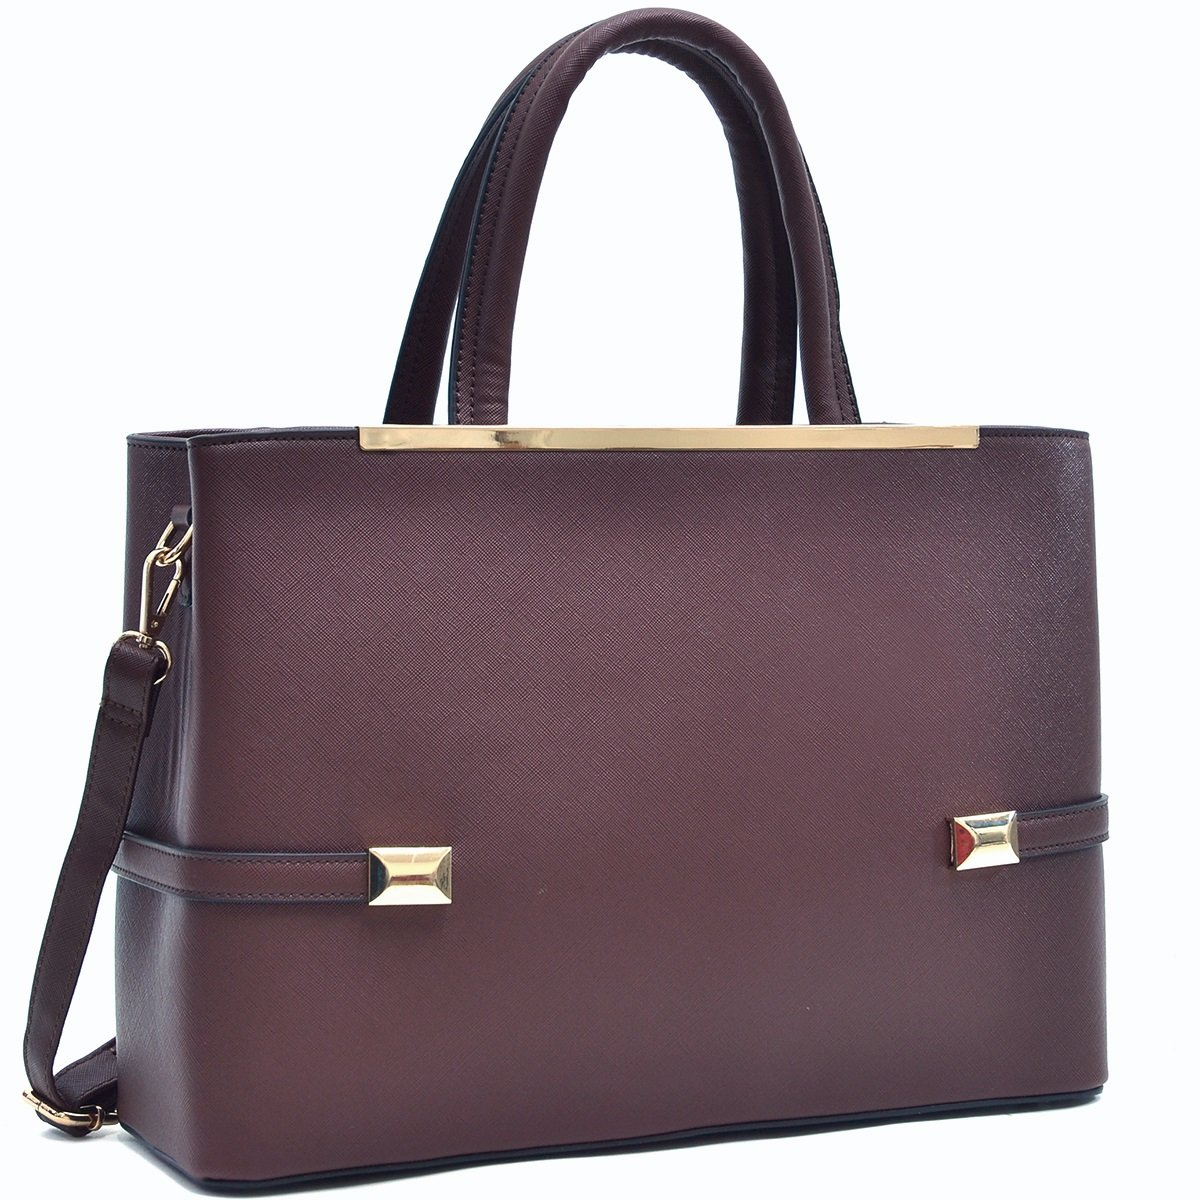 MMK Collection Women Solid Color Large Size PU Leather Simple Concise Business Style(8895N) with Gold Tone Framed Tote Bag Top Handle Bag Handbag with Shoulder Strap (Coffee)